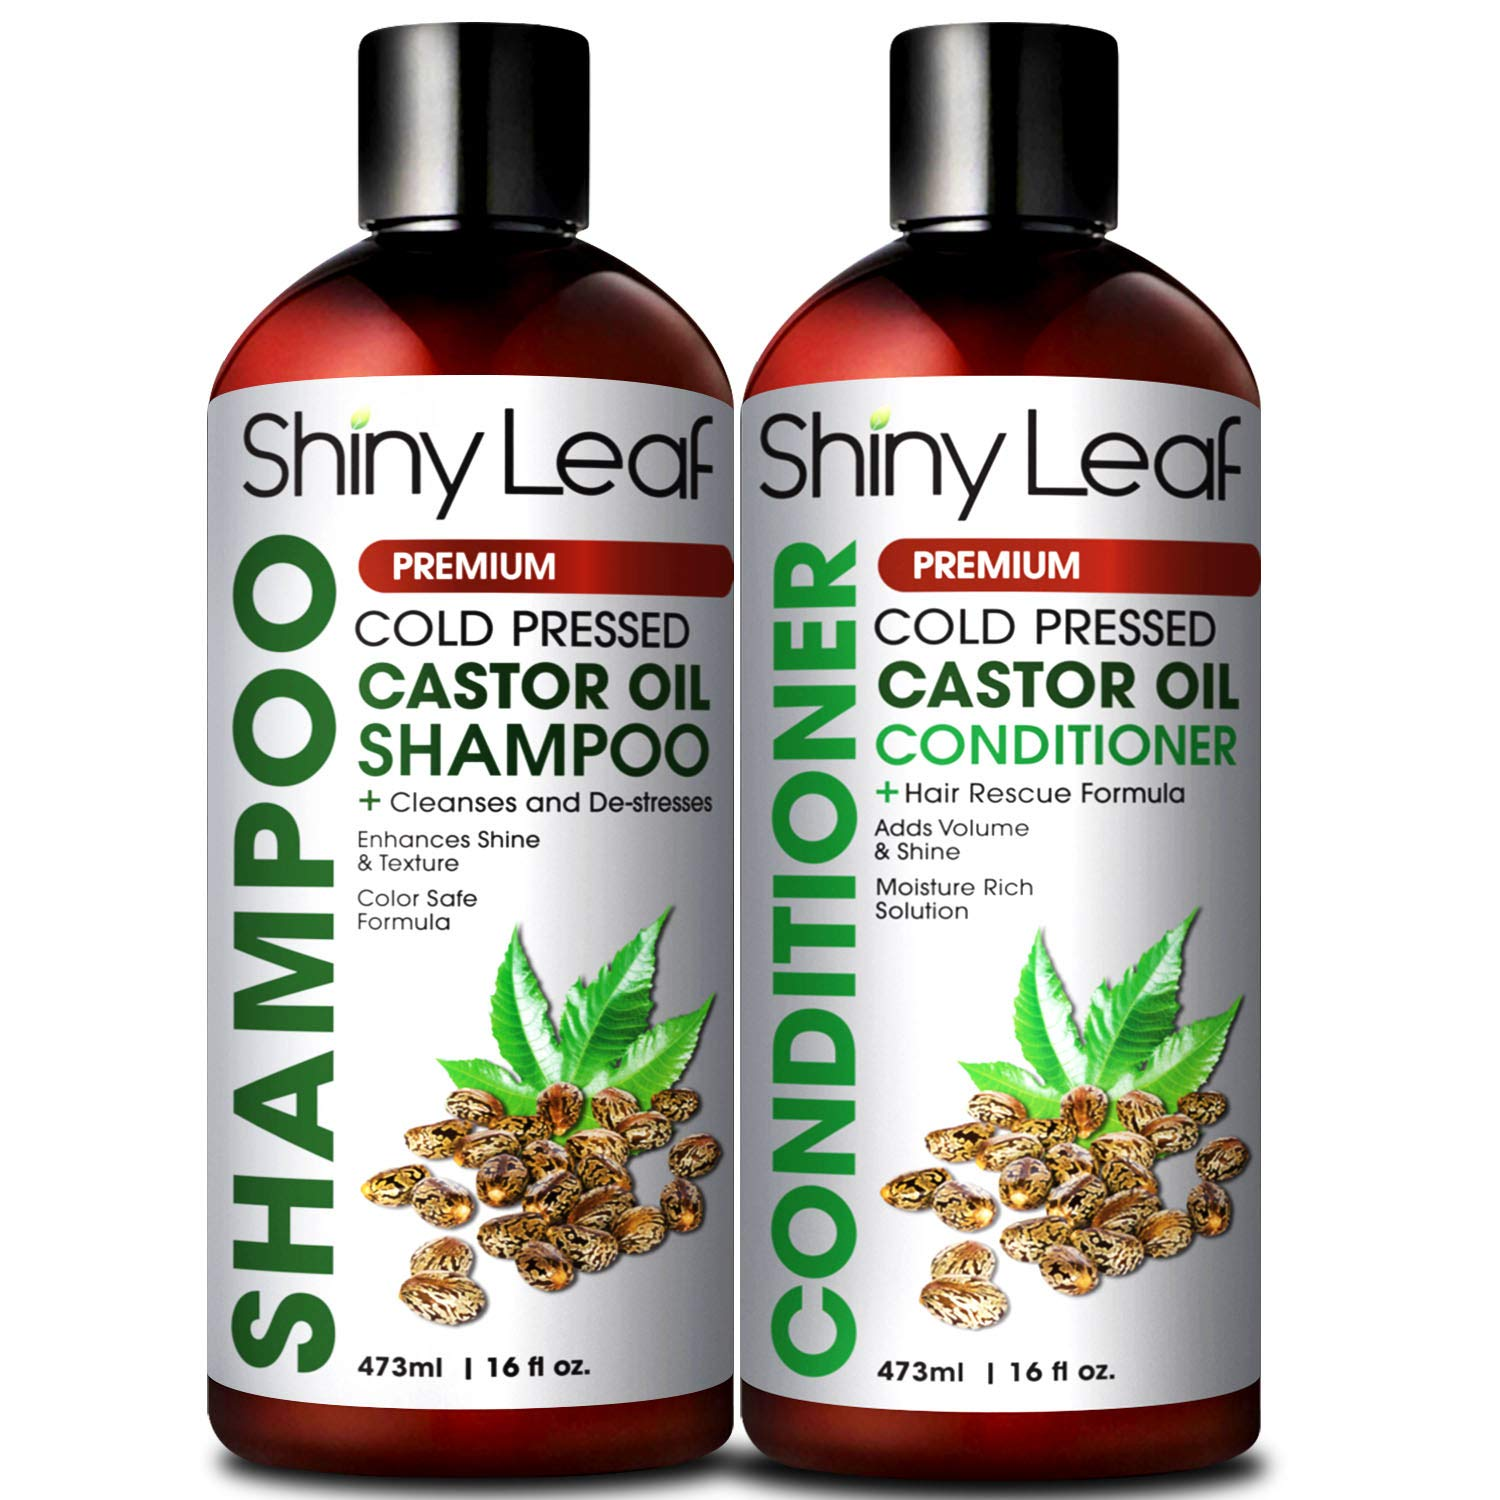 Castor Oil Shampoo and Conditioner For Hair Growth, With Organic Castor Oil, Sulfate Free, Cleanses & Destresses Hair, Safe for Color Treated Hair, Repair Hair Damage 16 Fl. Oz. by Shiny Leaf